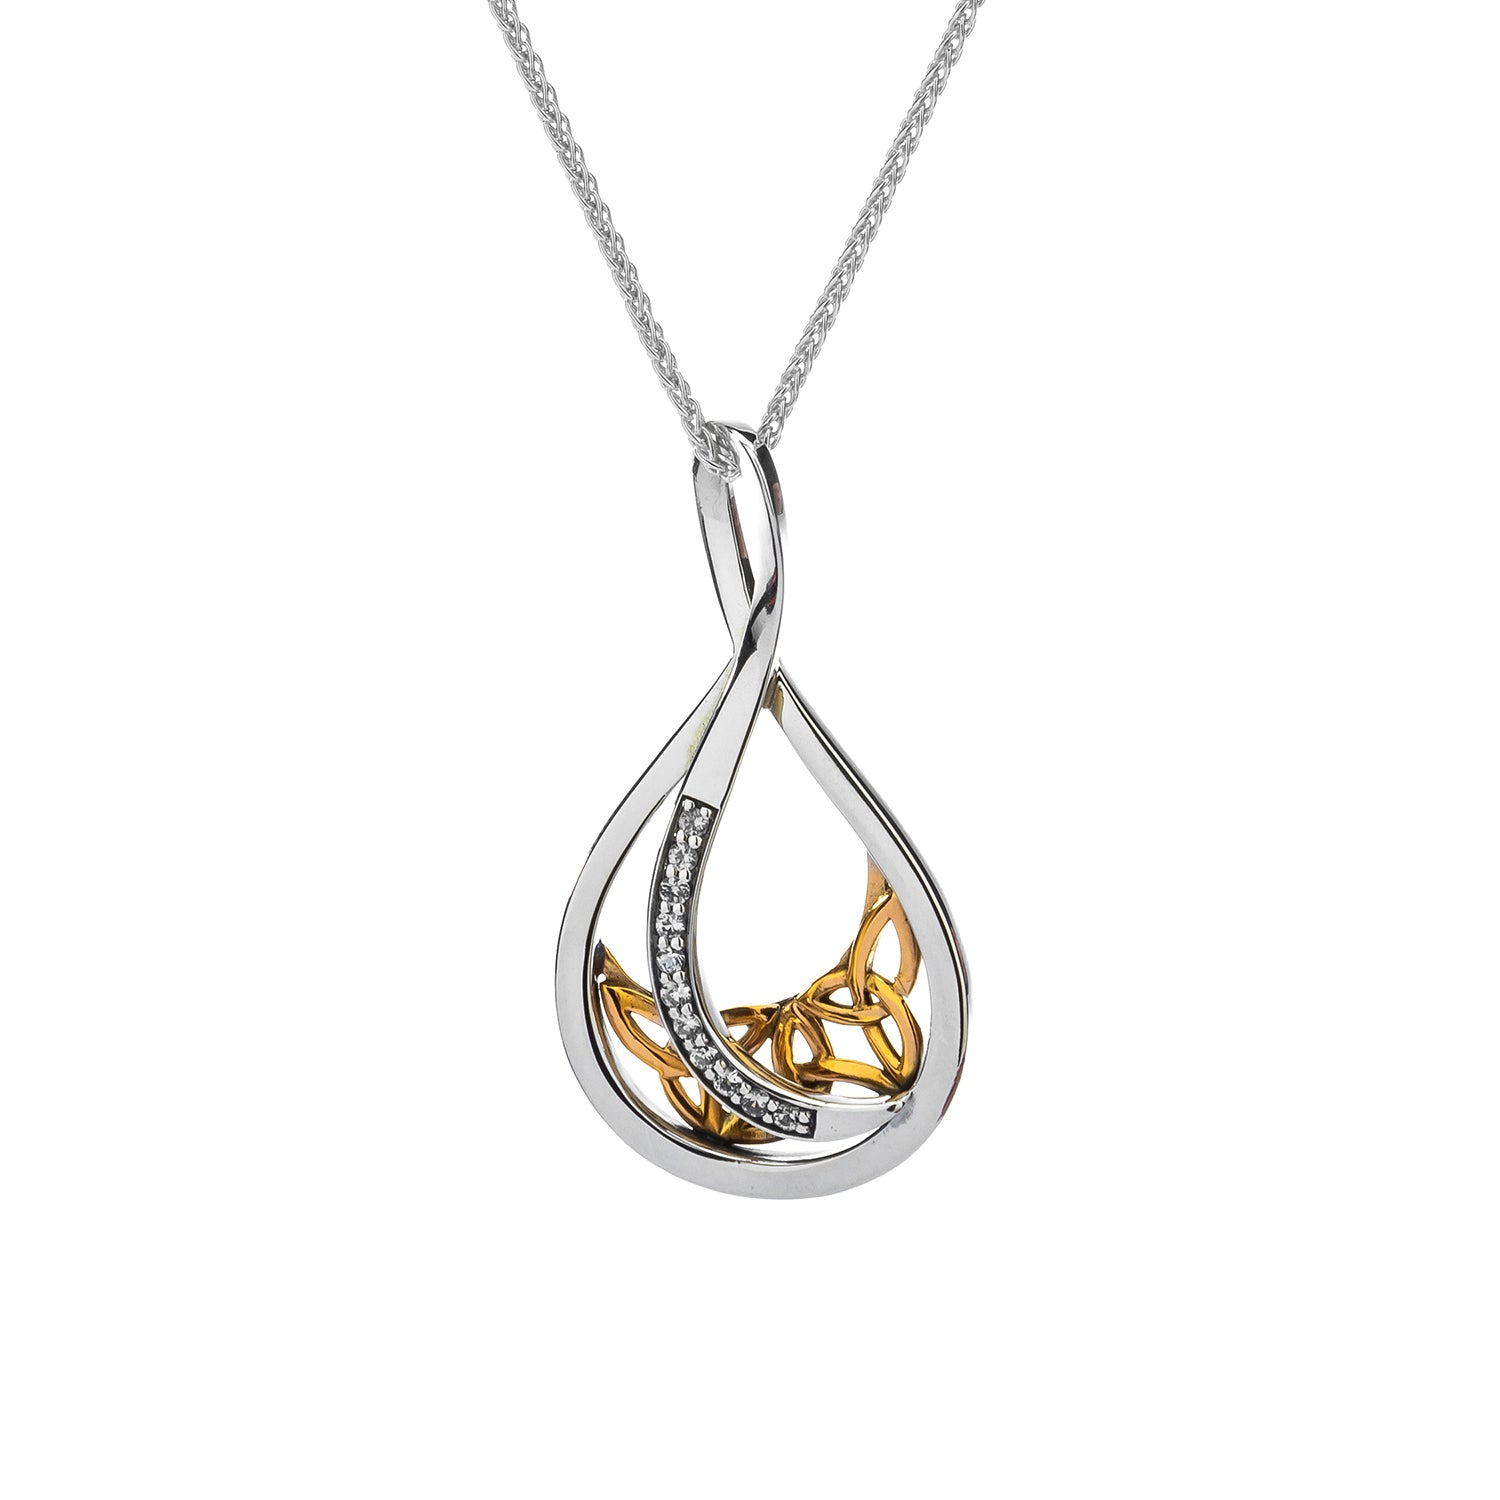 Pendant 10k White Sapphire Trinity Teardrop Large Pendant from welch and company jewelers near syracuse ny